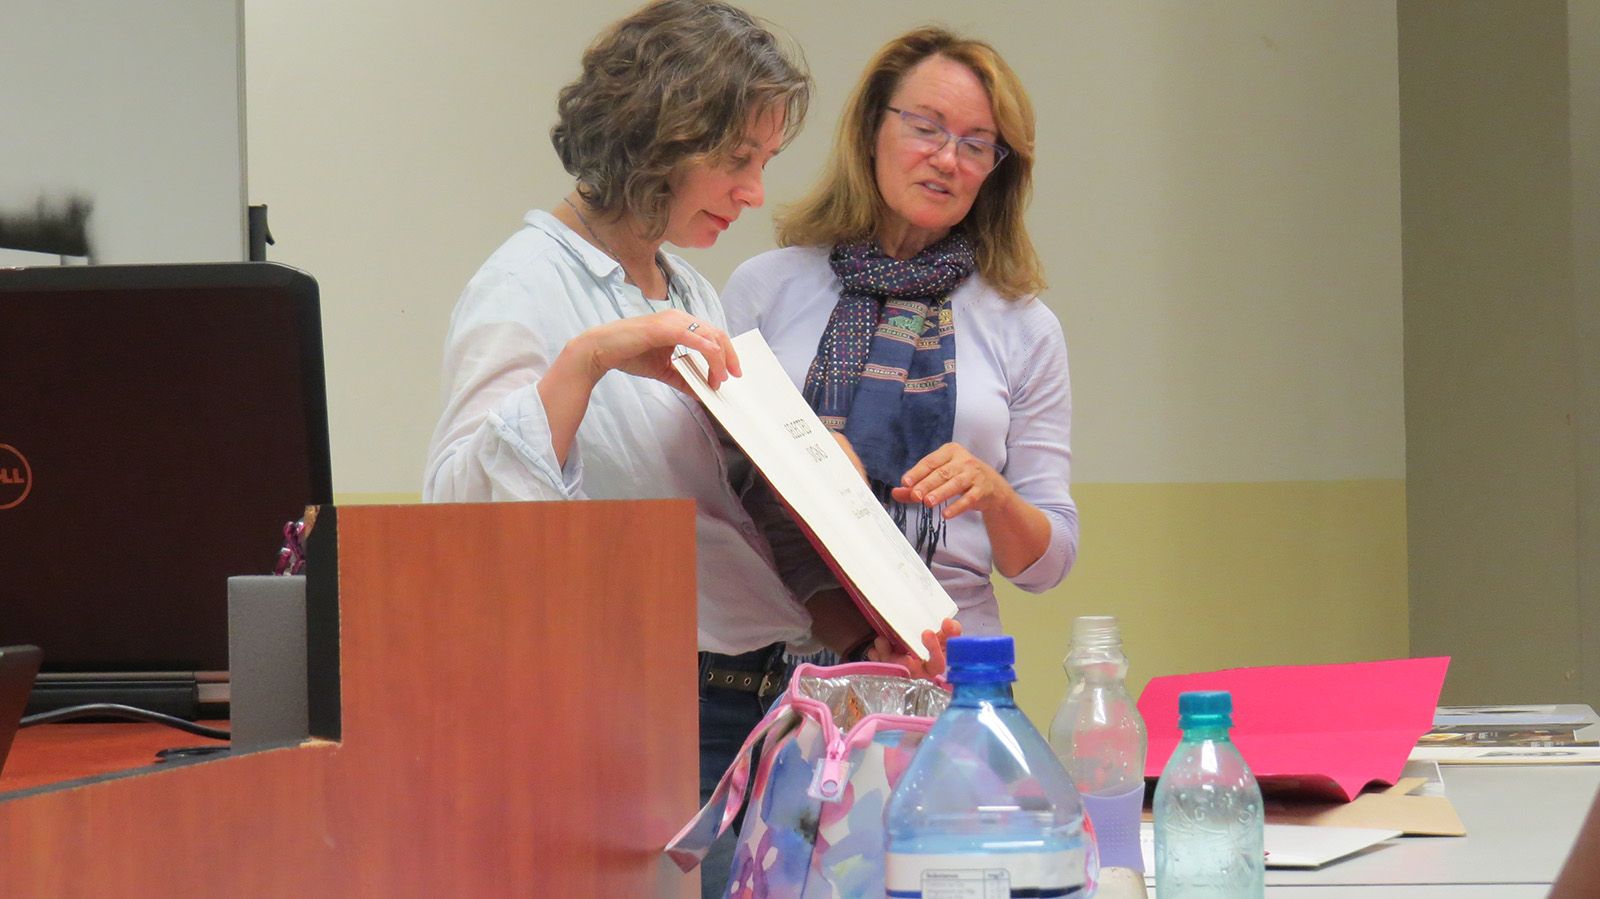 Click the image for a view of: Sue Gosin and Eliza Kentridge discussing Elizas book Selected Signs at the Department of Visual Arts Senior Student Seminar